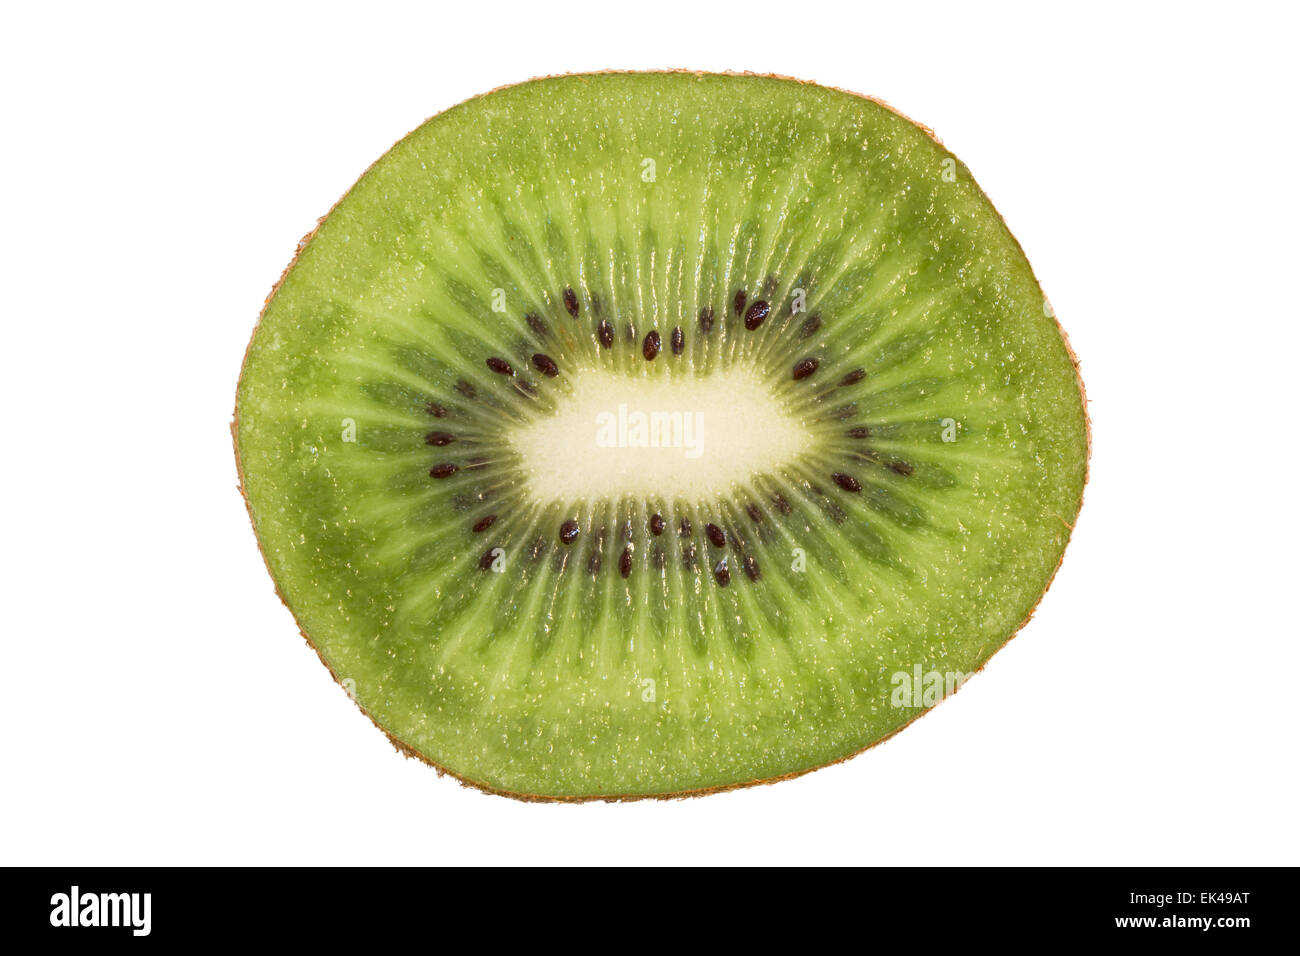 Closeup of a sliced kiwifruit (also known as kiwi or Chinese gooseberry) viewed from the front, isolated on white - Stock Image